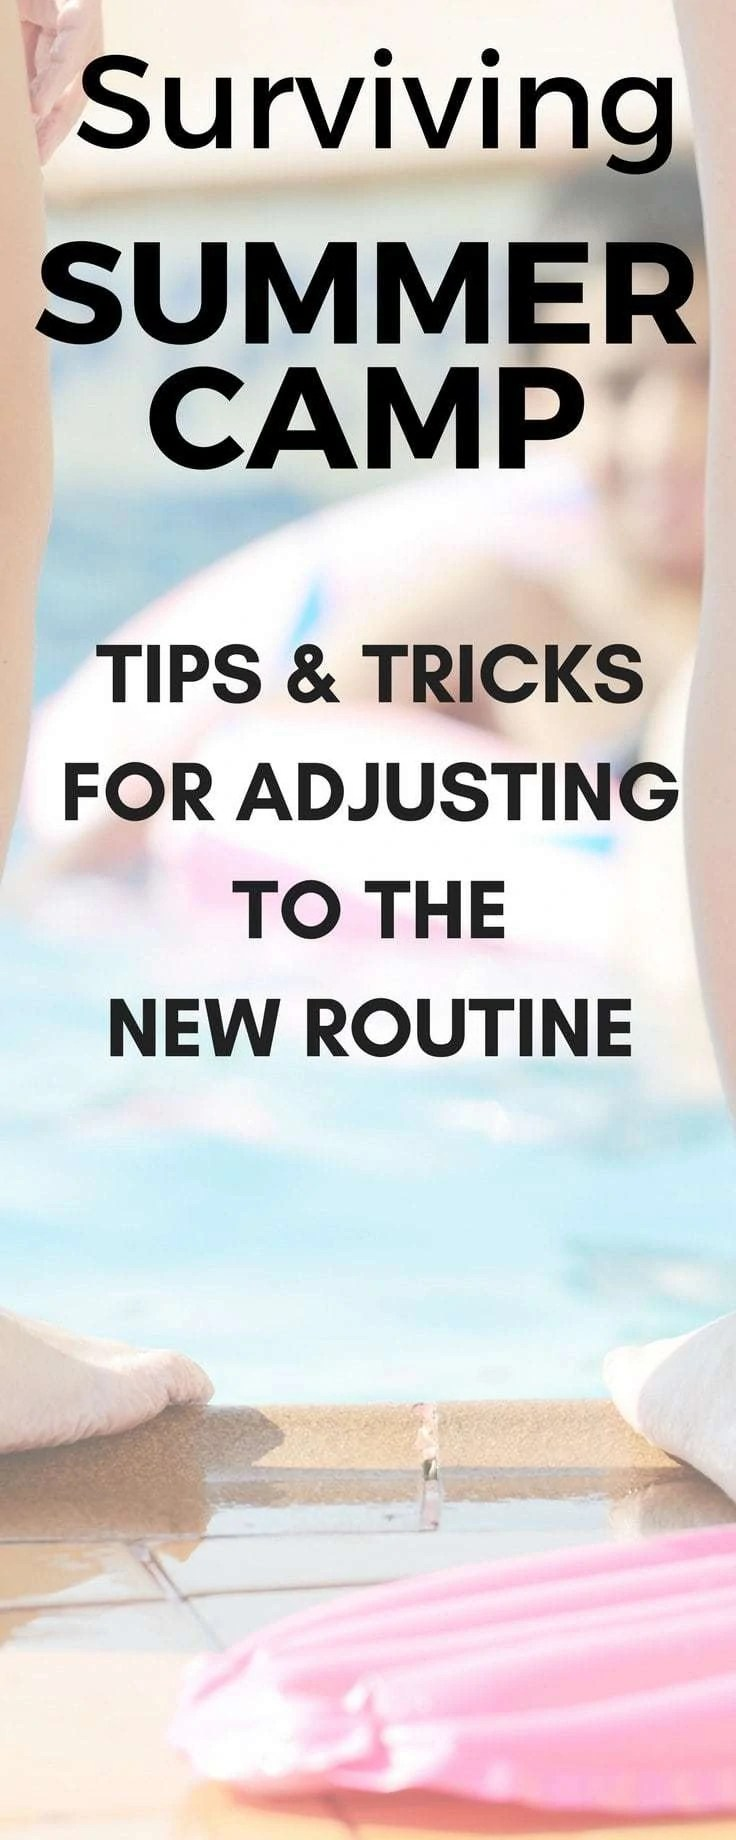 Yes! These tips really help make the summer vacation months easier and less hectic! Learn these ticks and hacks to make getting kids to and from camp easier!